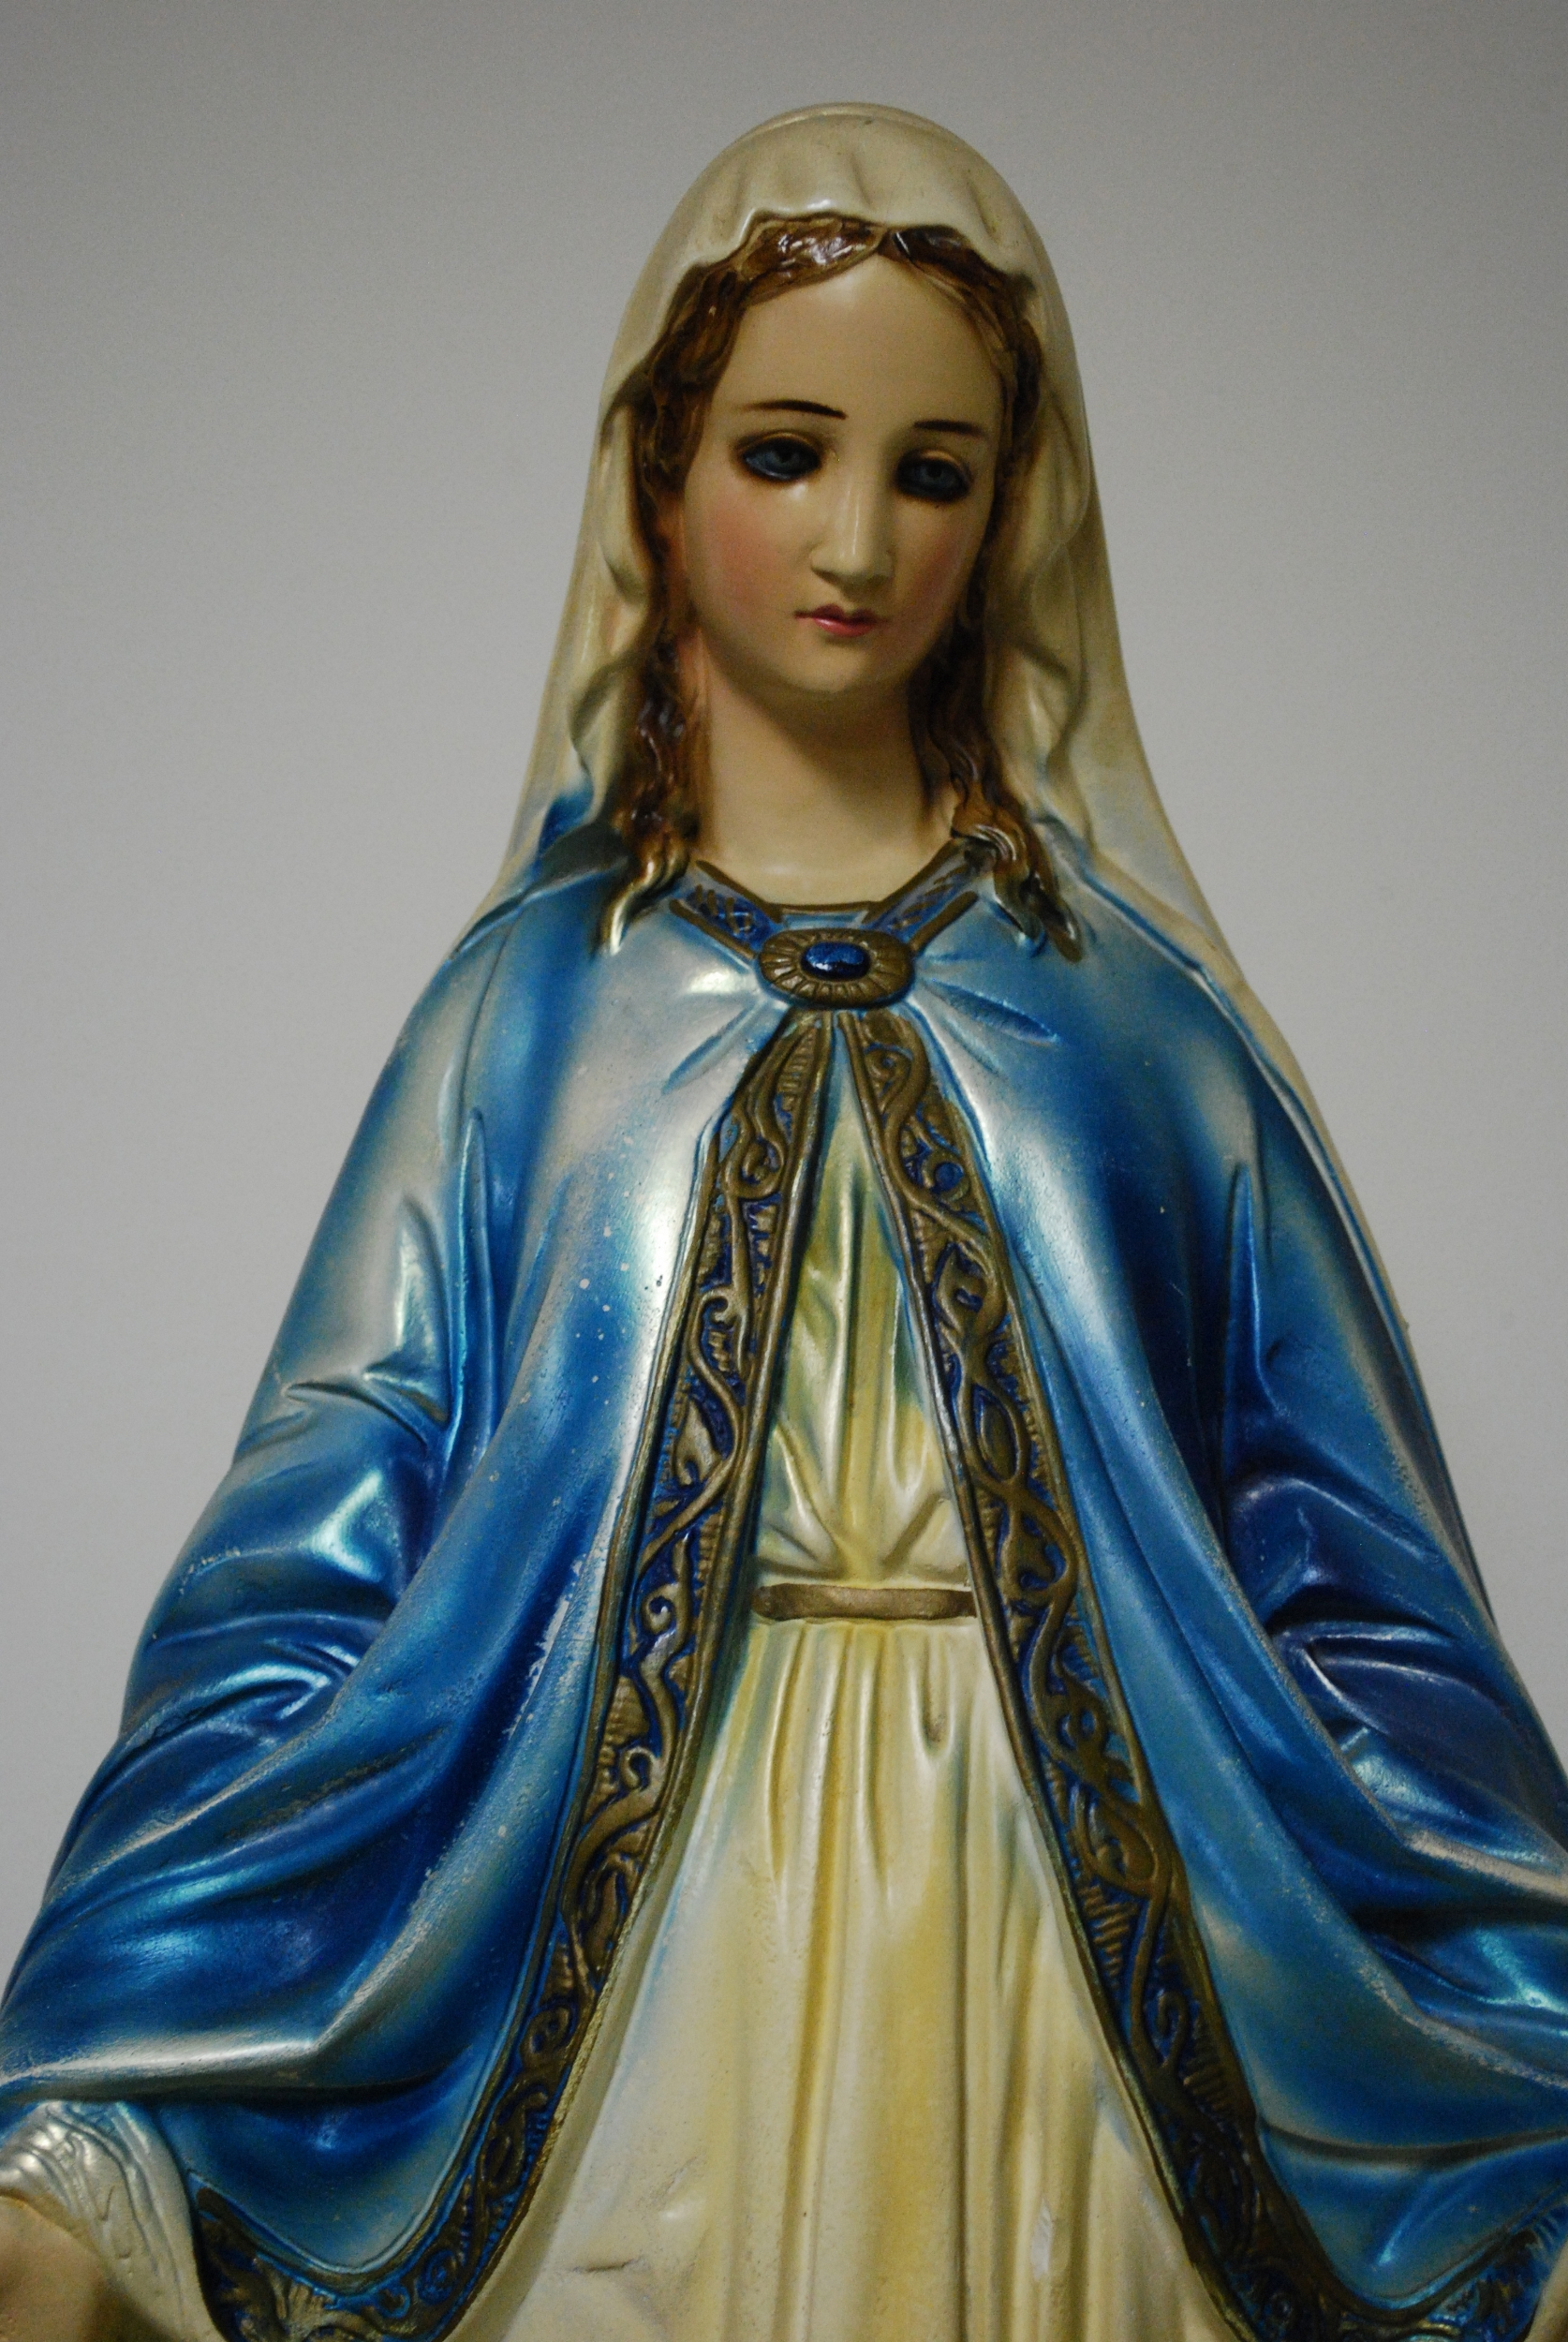 Chalkware sculpture of Our Lady of Grace, mid 20th century